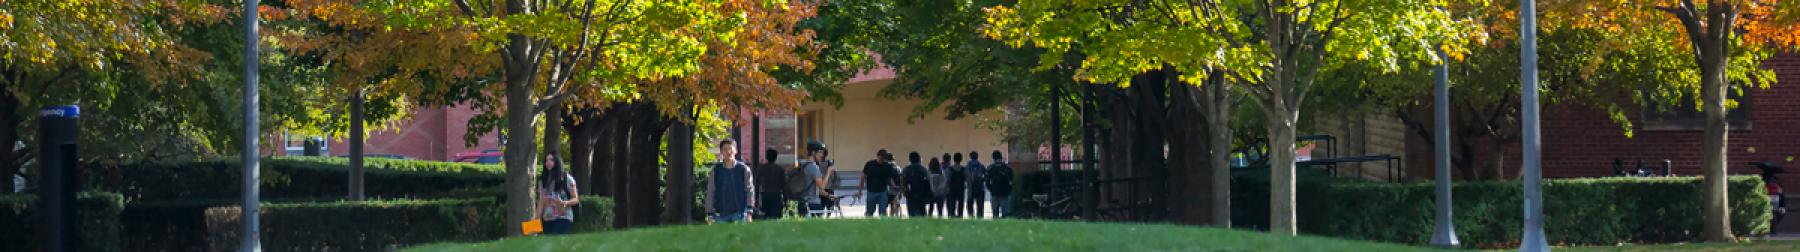 Students milling about in front of the Grainger Engineering Library